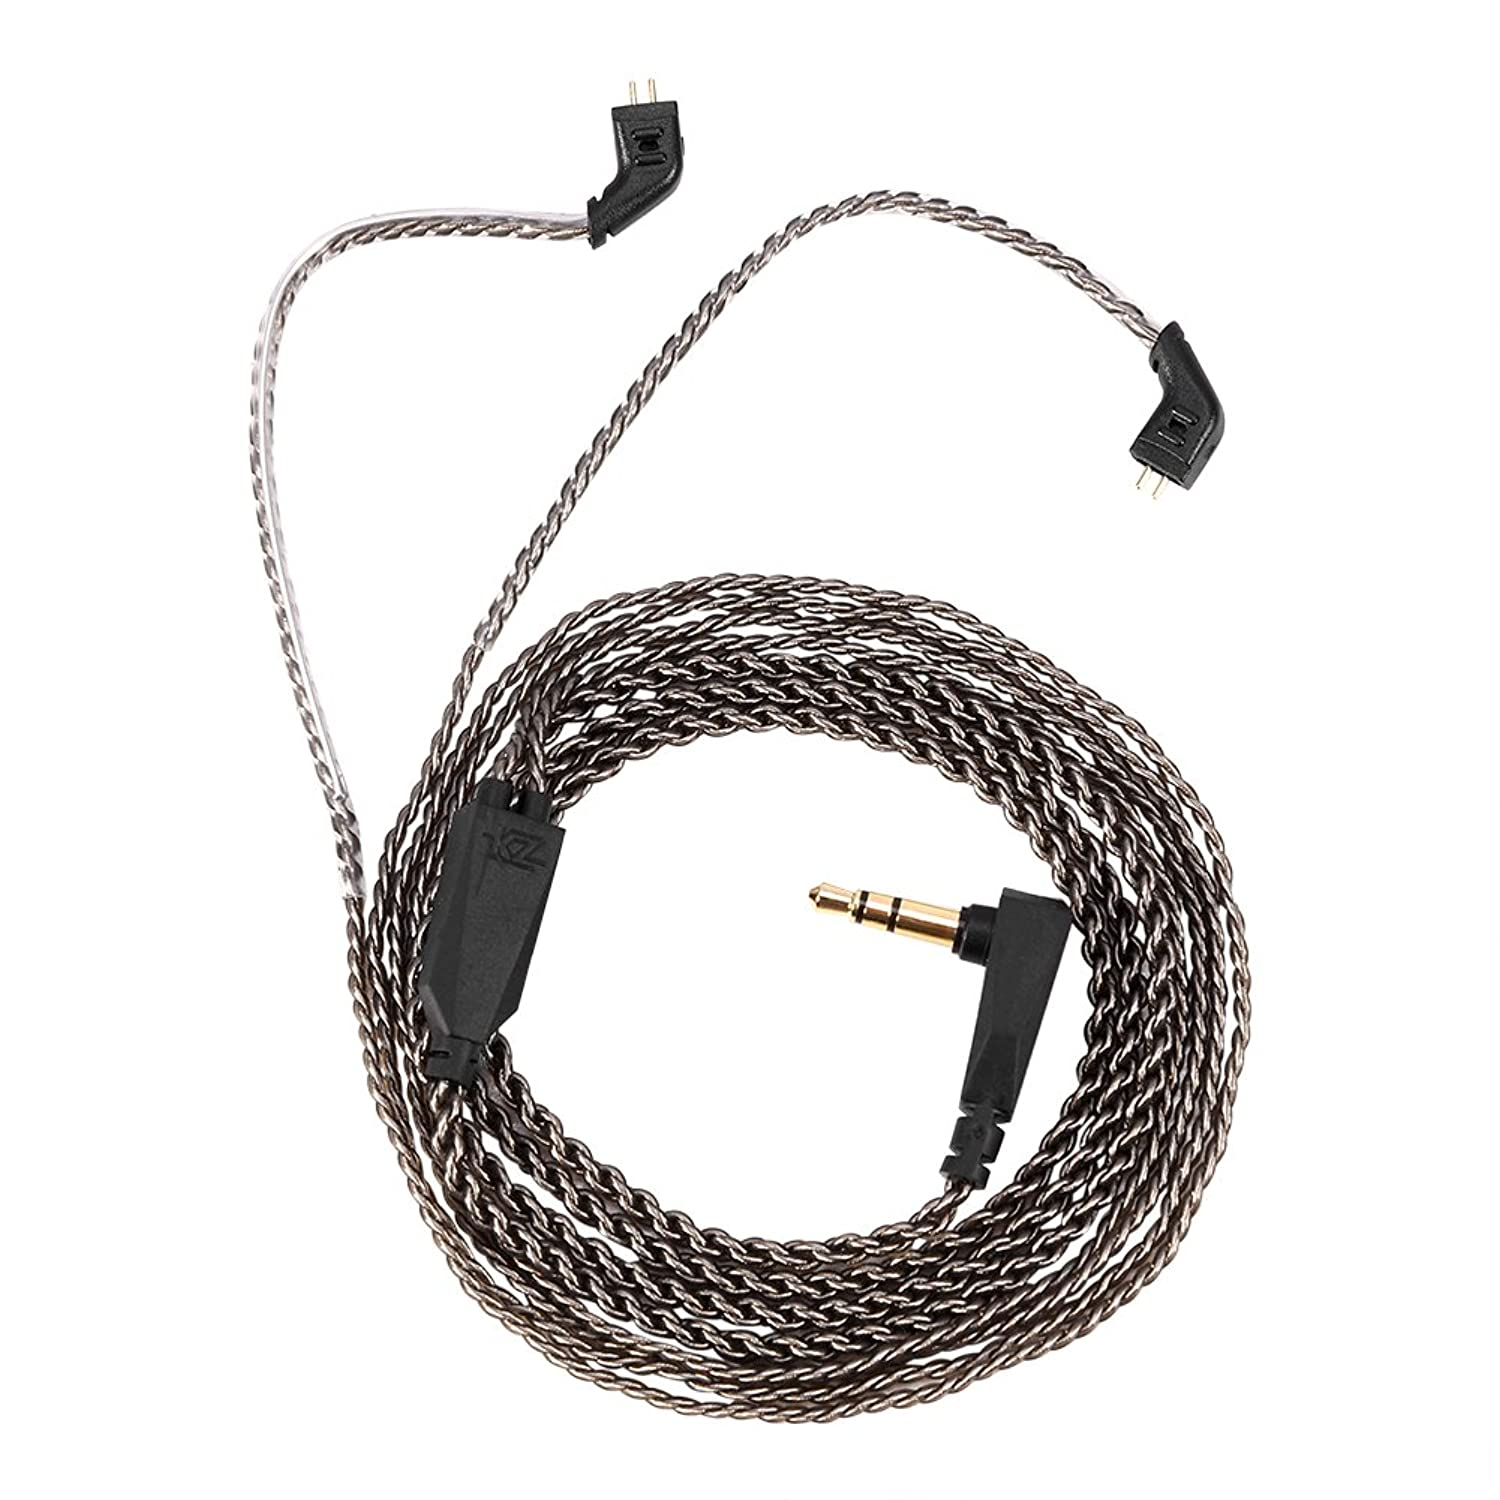 3.5mm Earphones Headphone Cable, Pure Copper 2 Pin Detachable Auxiliary Audio Cable (4ft /1.2m) for KZ ZST ED12 ES3 ZSR Headphone